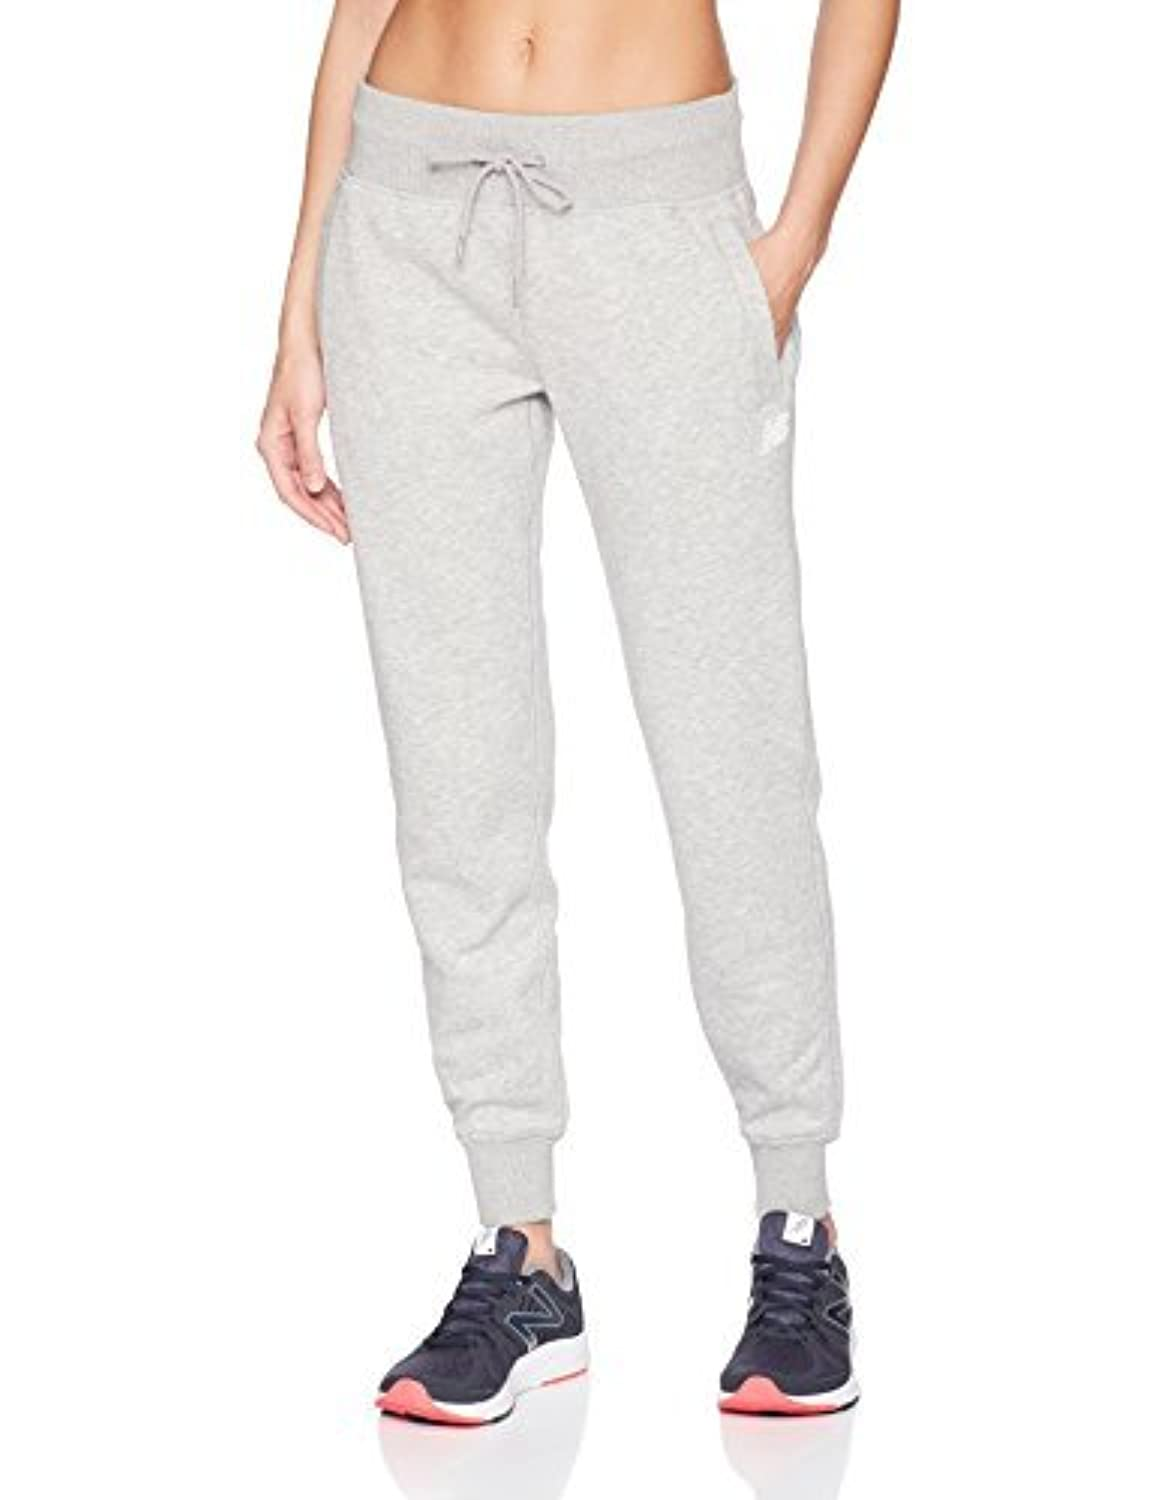 New Balance Women's Essentials Sweatpants Athletic Grey Large [並行輸入品]